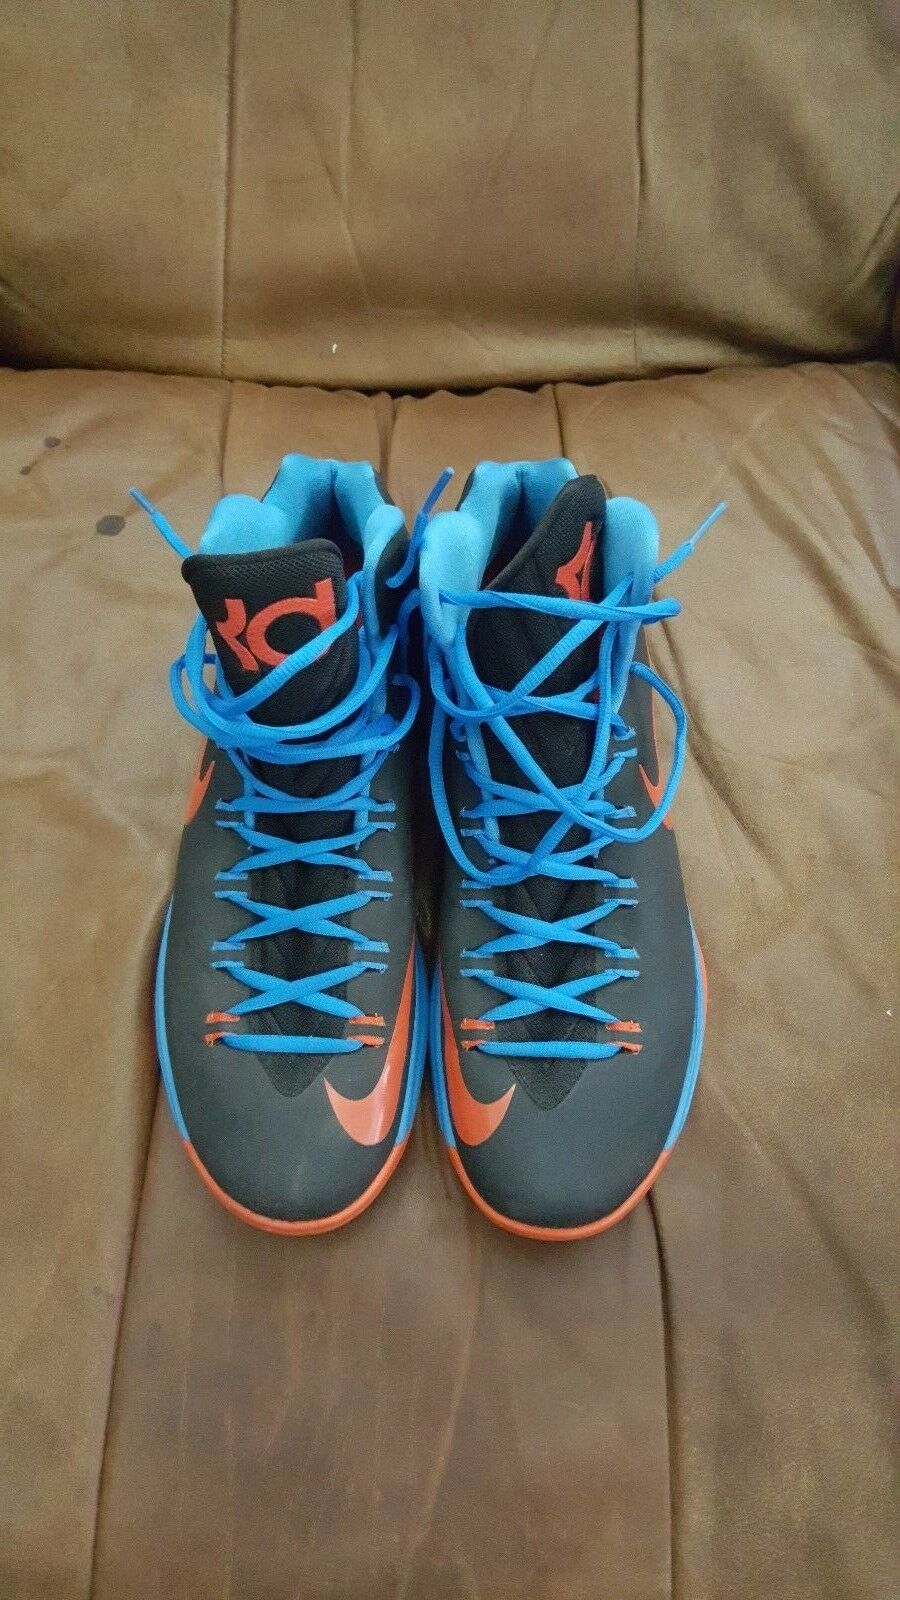 The latest discount shoes for men and women Nike KD 5 Thunder Away Blue Orange Comfortable